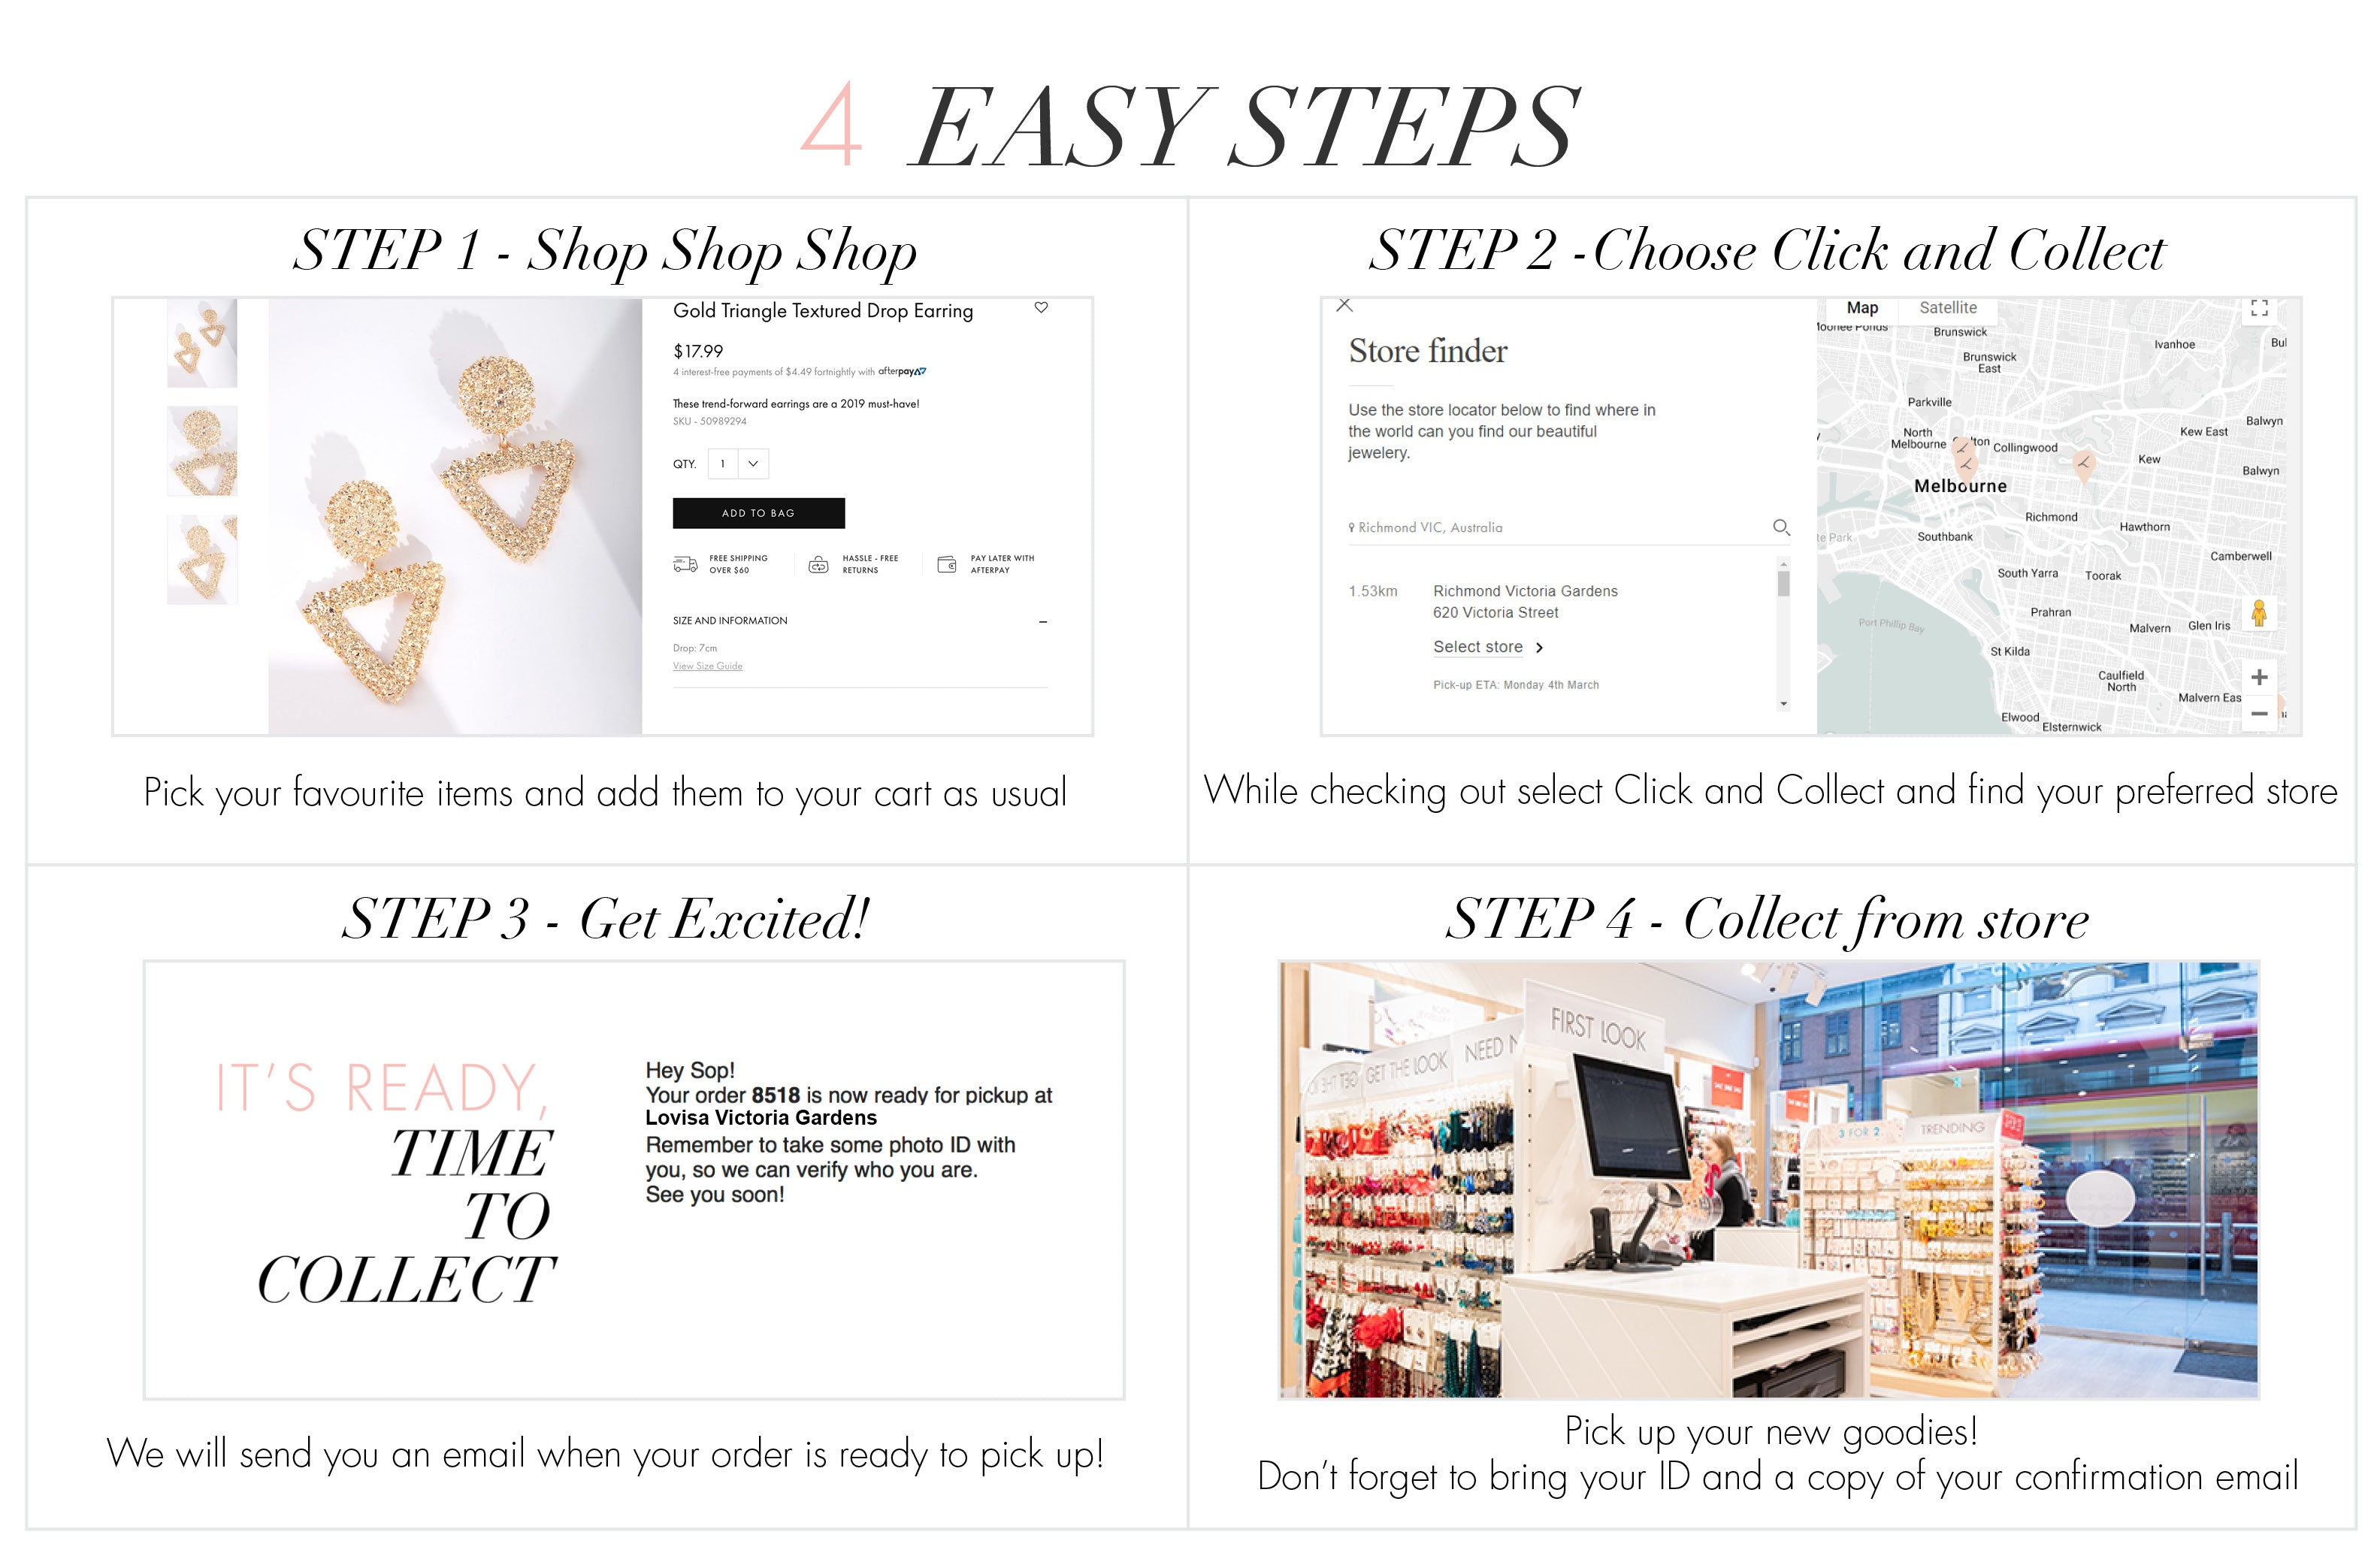 4 Easy Steps | Step 1 - Shop | Step 2 - Choose Click & Collect | Step 3 - Time to Collect Message | Step 4 - Collect!